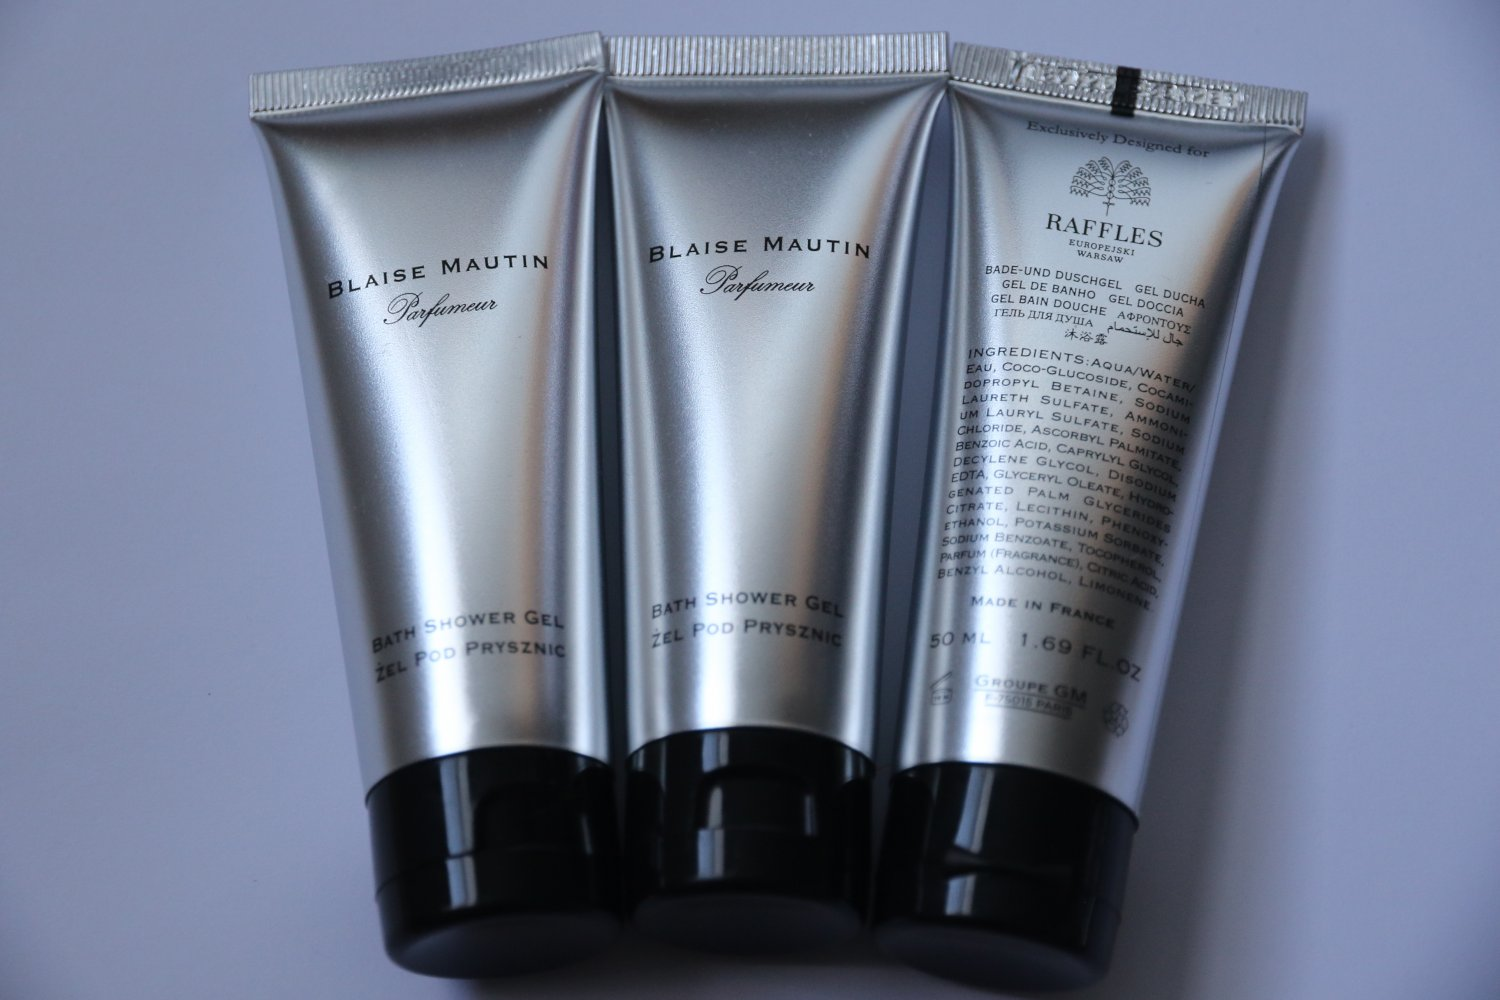 3 x 50 ml/1.7 oz Blaise Mautin Raffles Hotel Shampoo Travel Set Lot